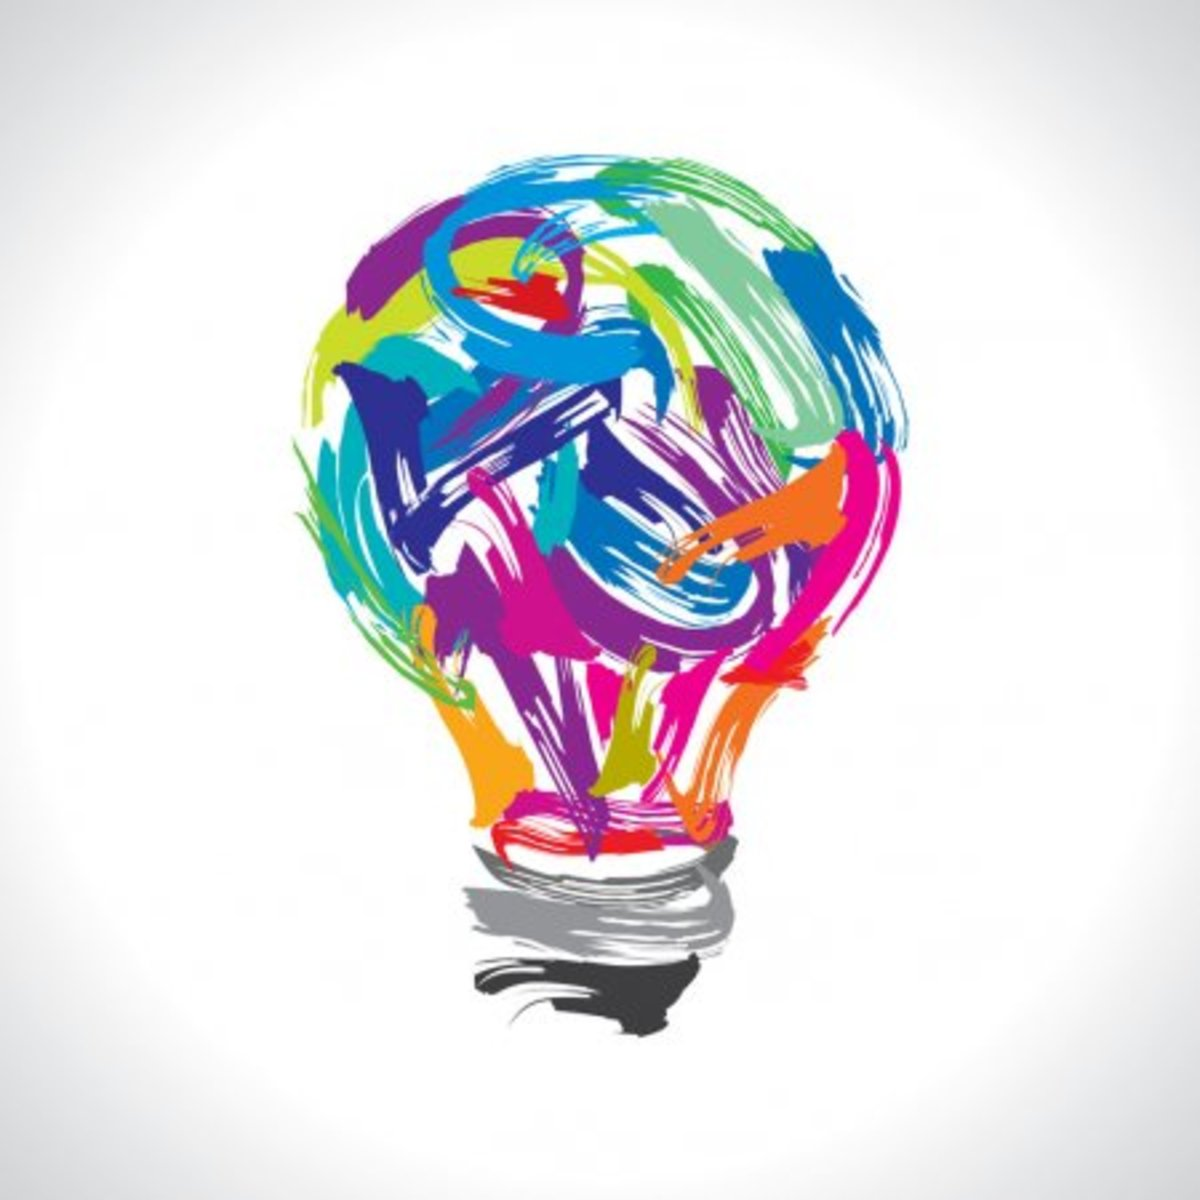 What you come up with during your free writing session could help spark new ideas for you.